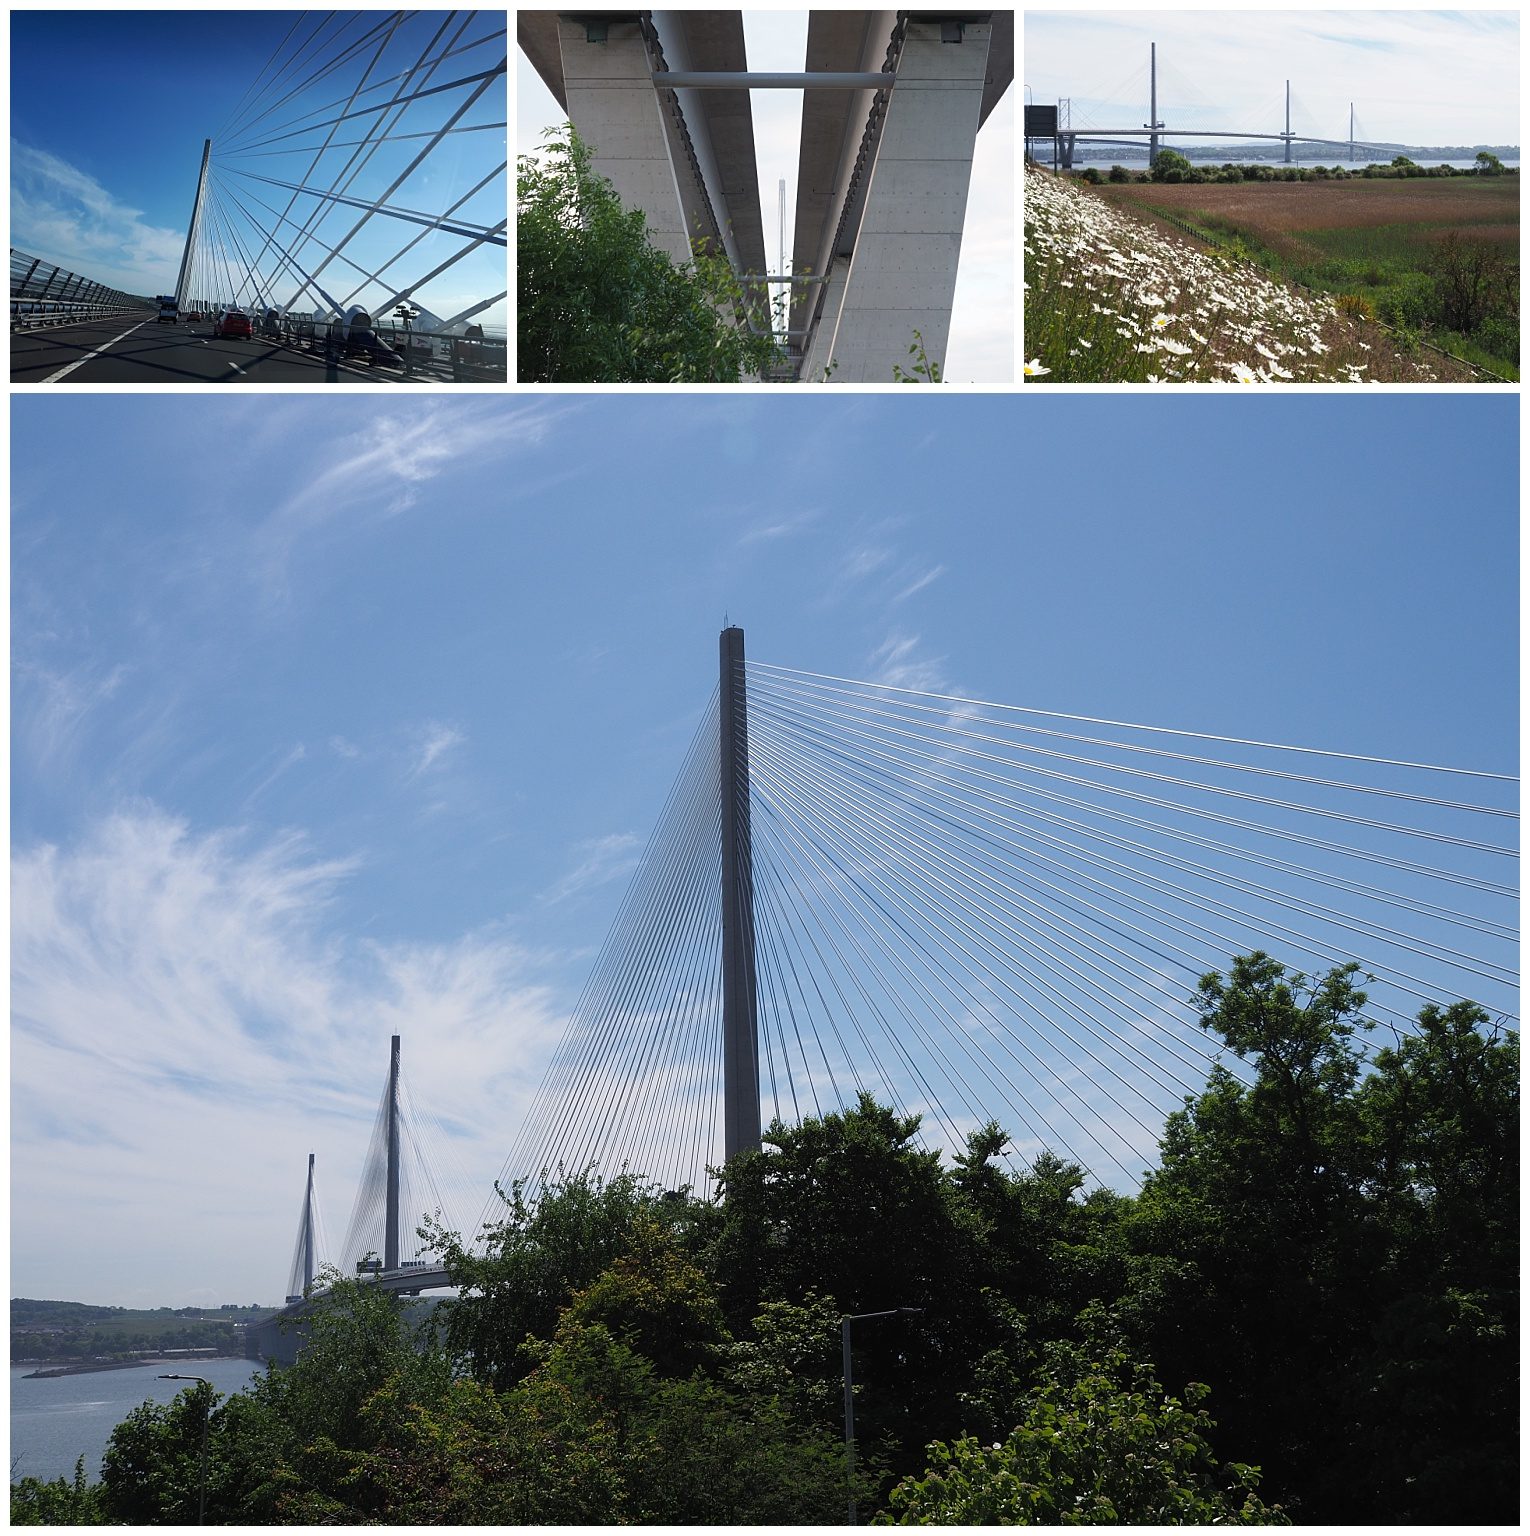 The new cable-stayed bridge for road traffic across the Firth of Forth: 4 views.